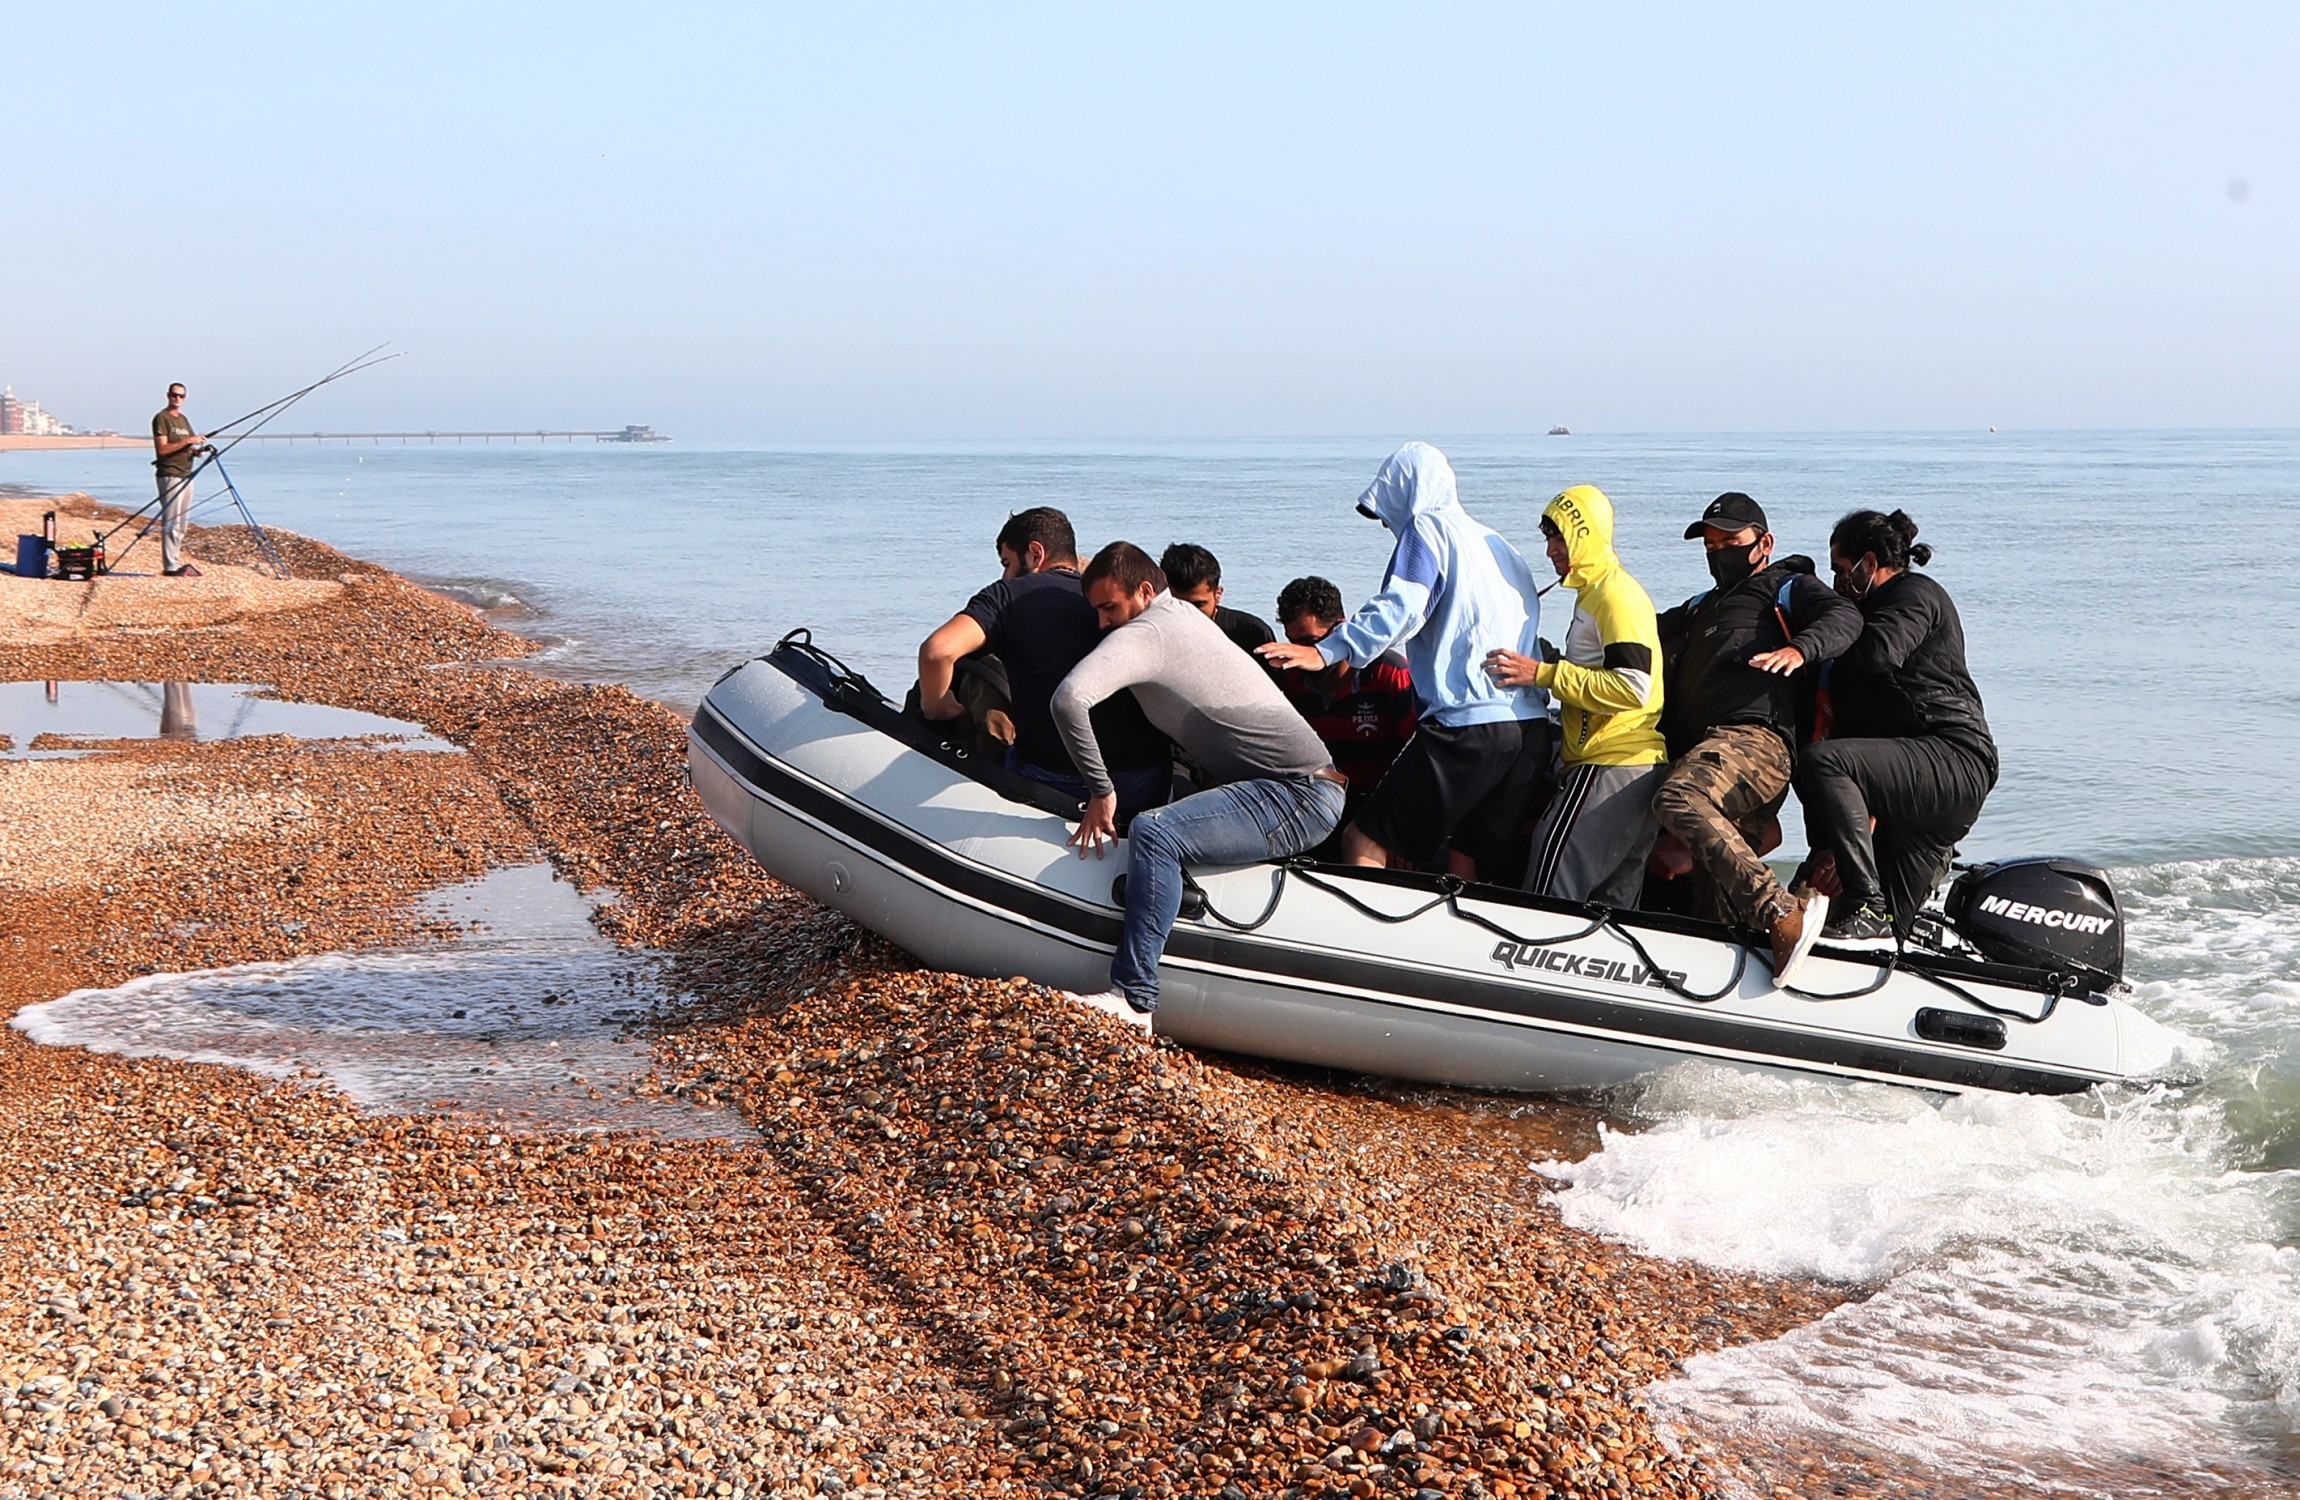 United Kingdom  and France sign new agreement to tackle illegal migration